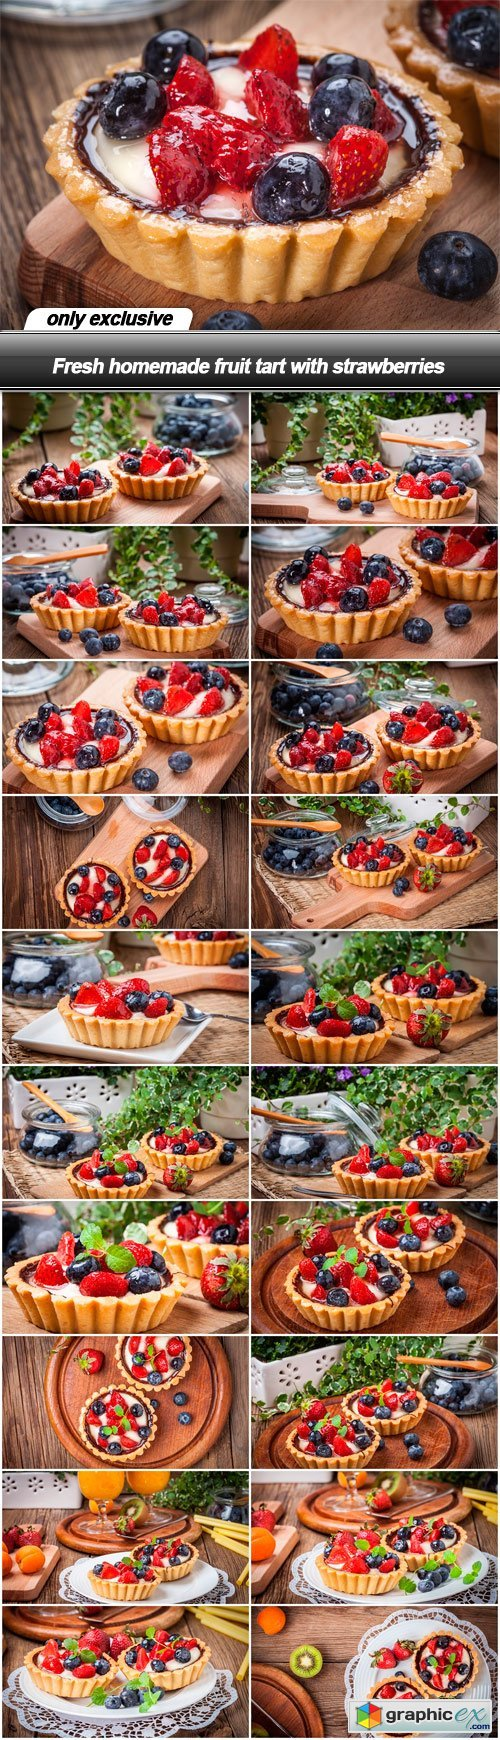 Fresh homemade fruit tart with strawberries - 21 UHQ JPEG